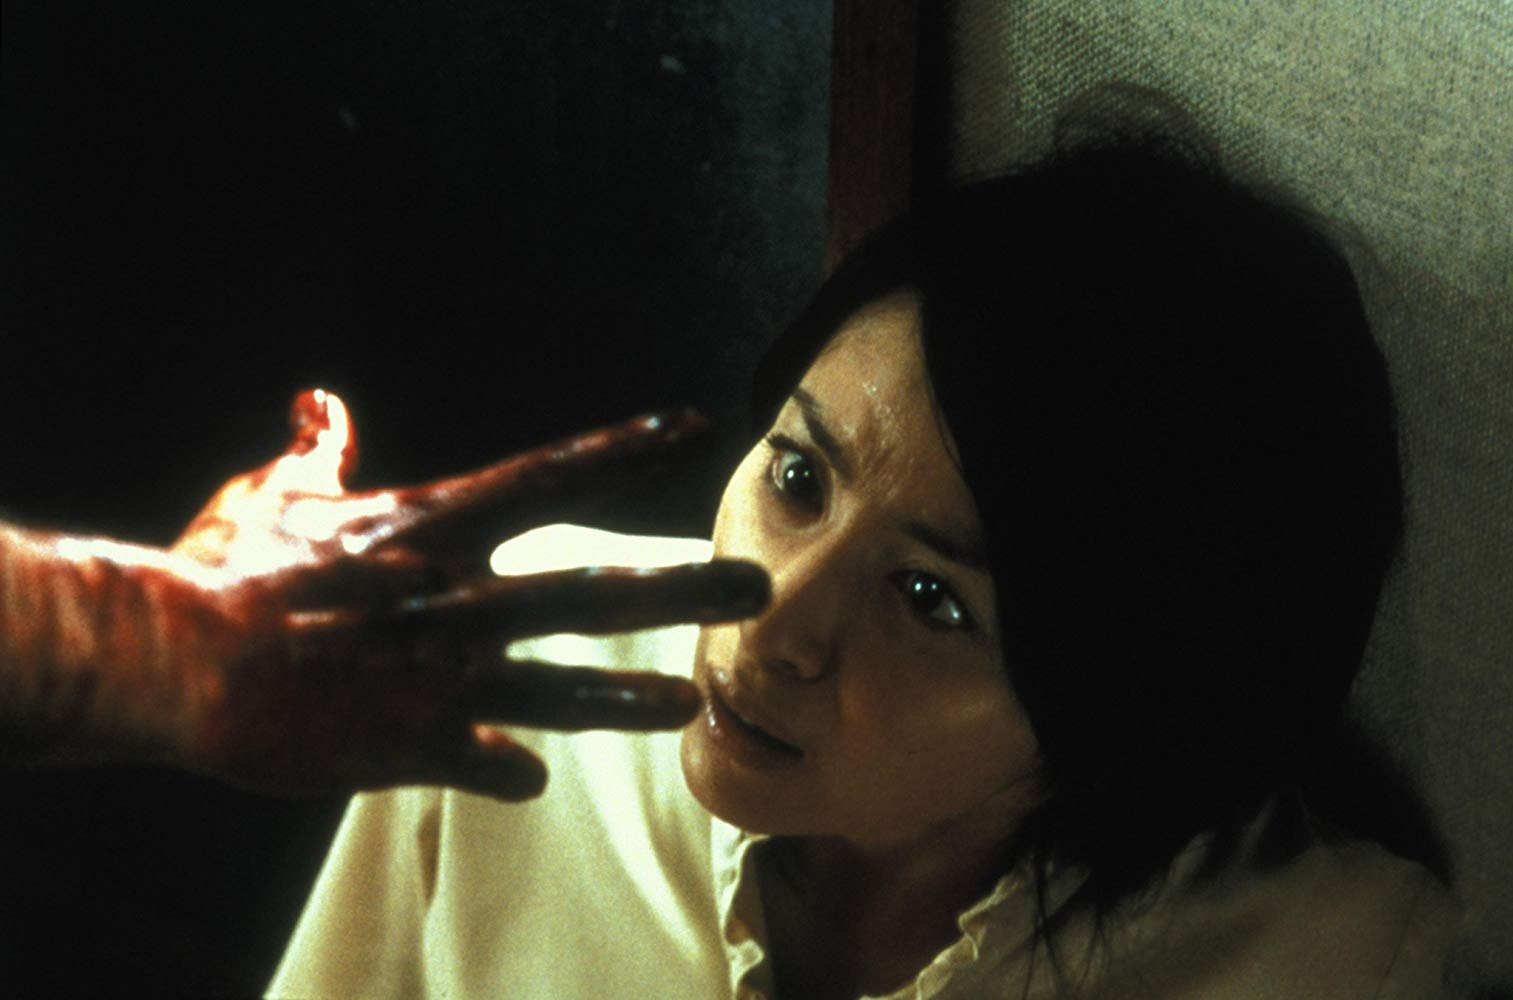 Megumi Okina in Ju-on: The Grudge (2003)